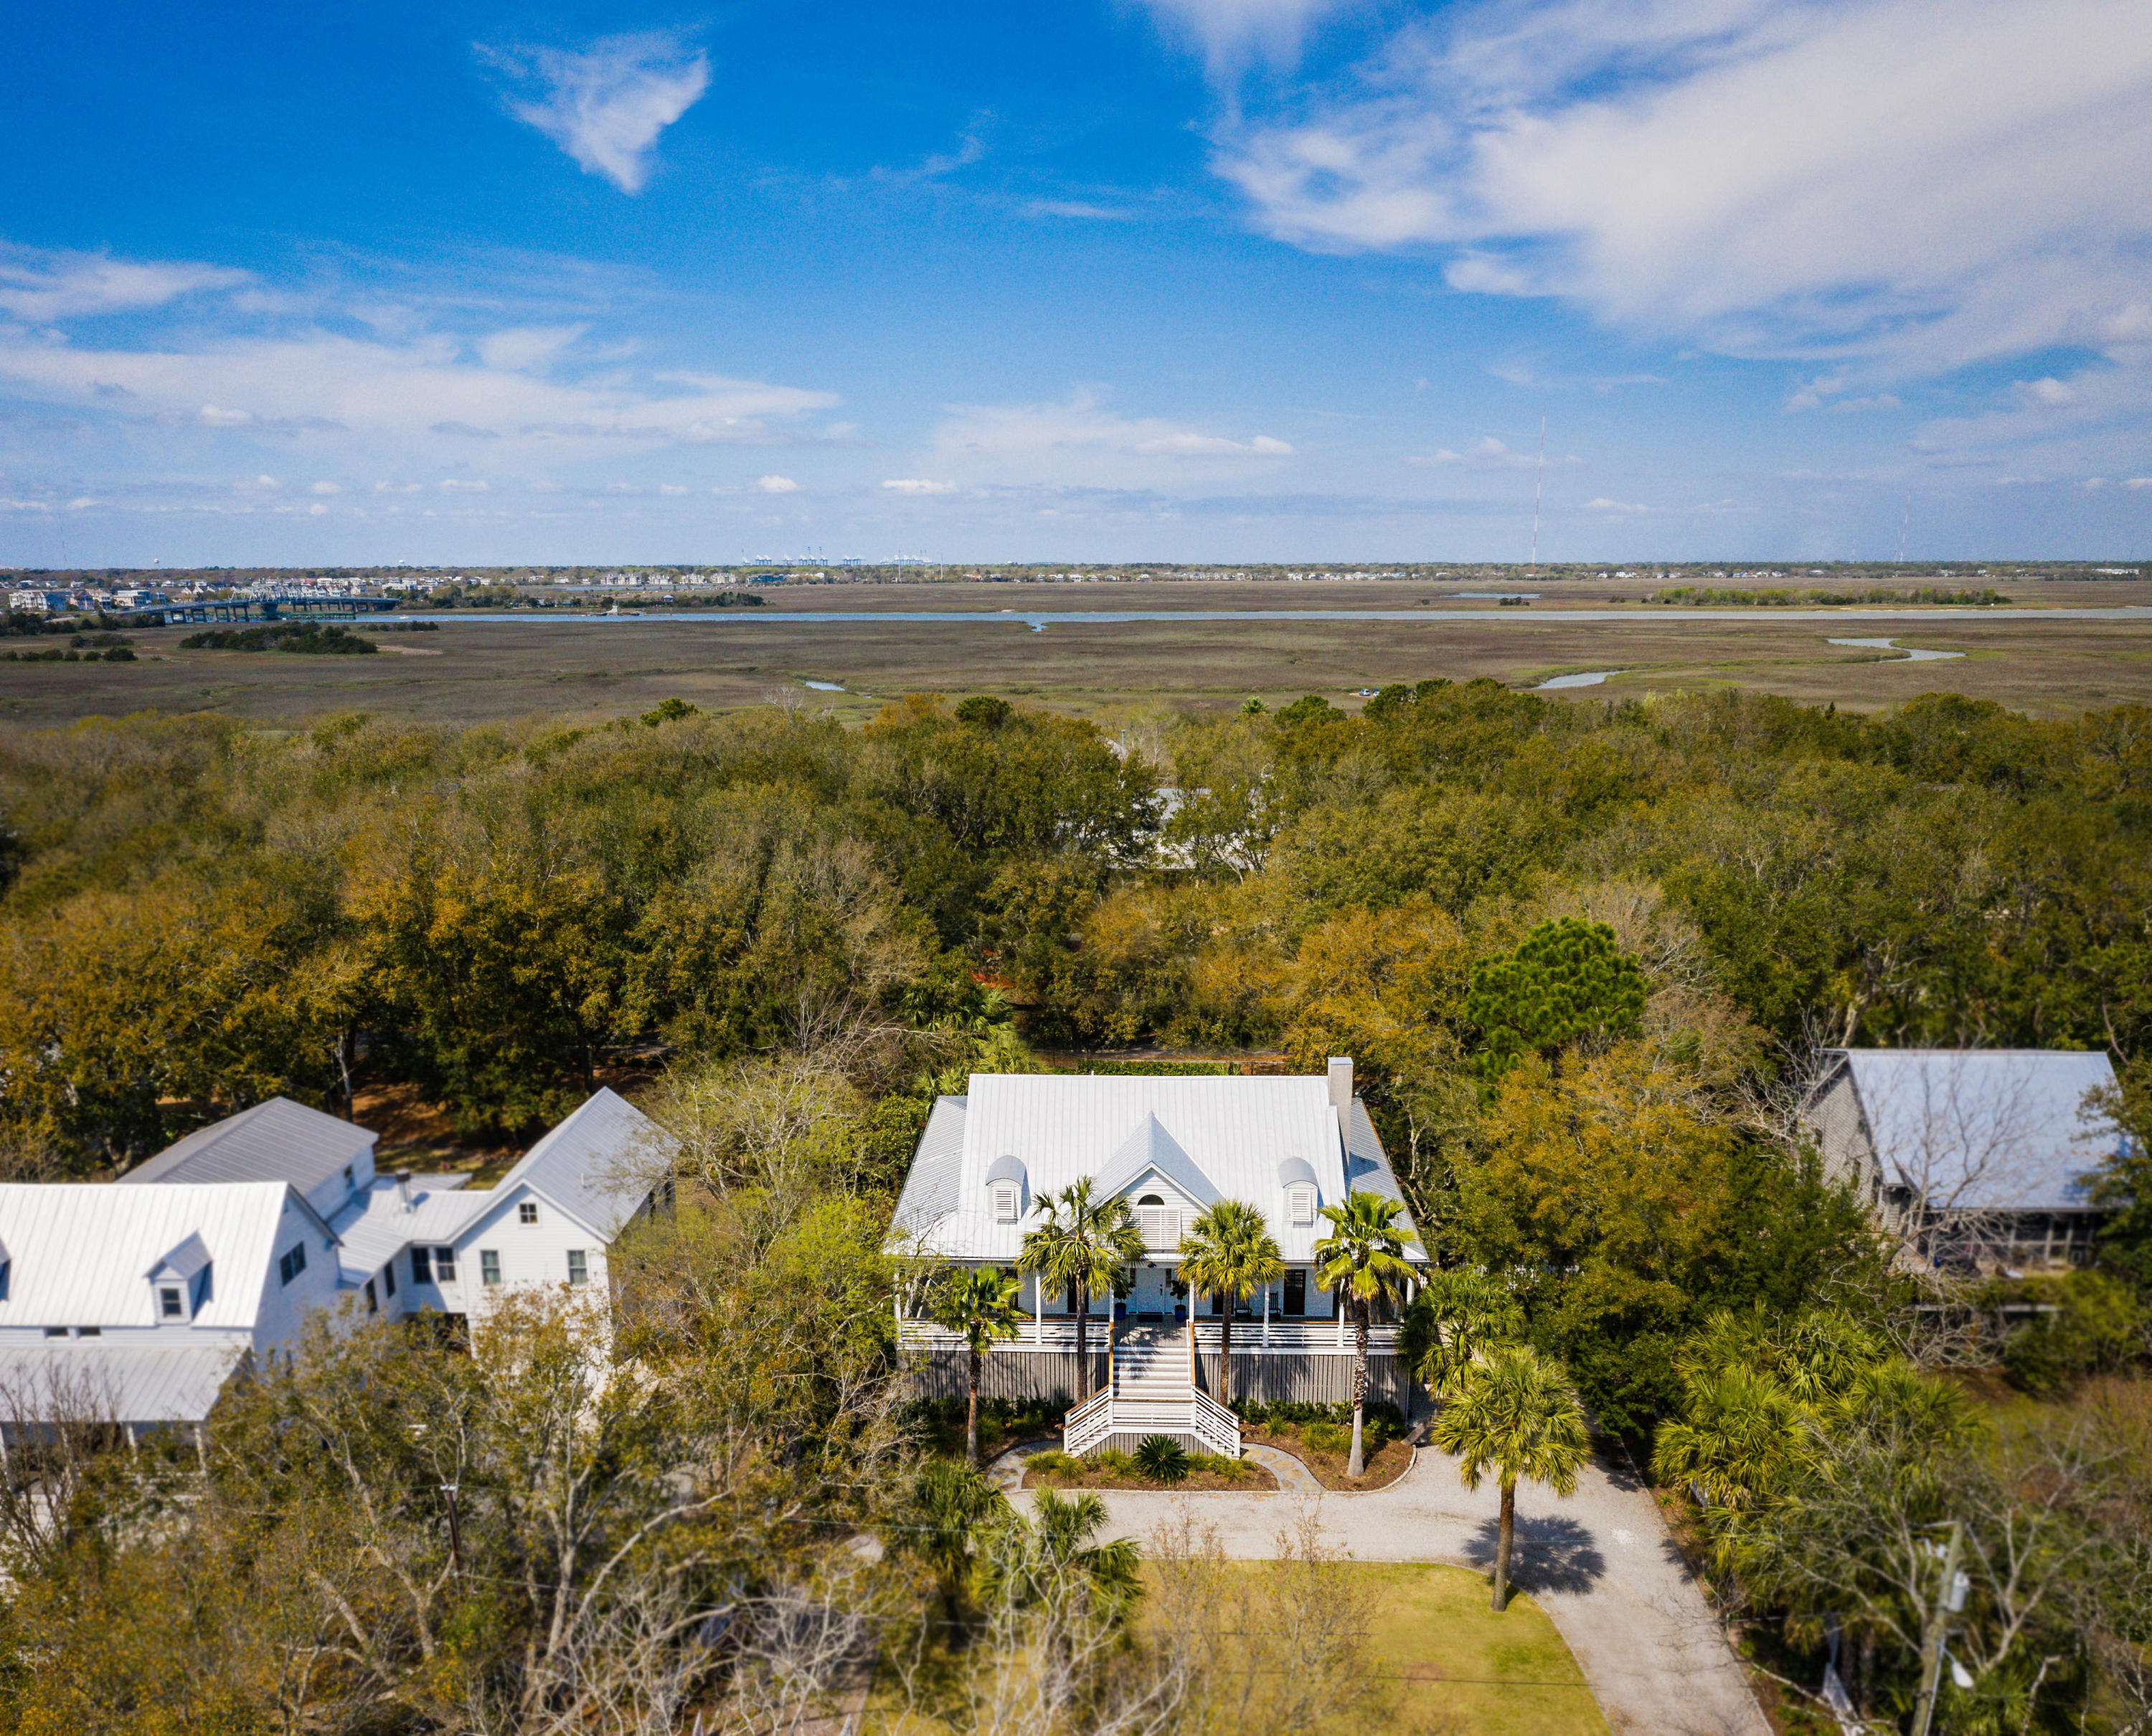 Sullivans Island Homes For Sale - 2514 Myrtle, Sullivans Island, SC - 0